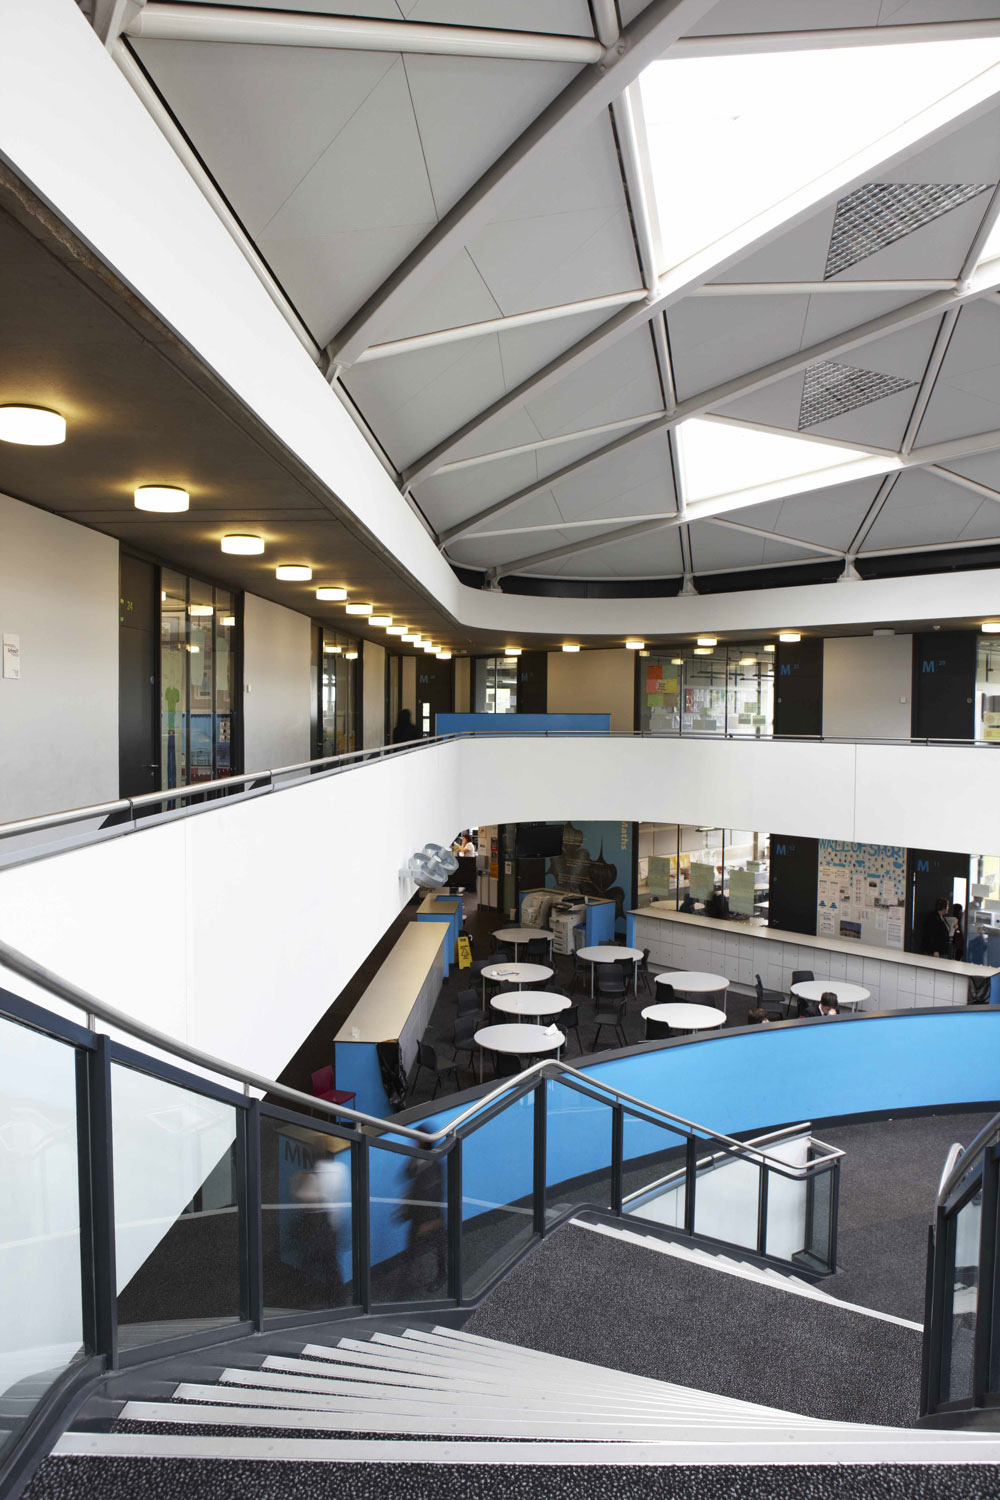 Thomas Deakin Academy interior, Peterborough | Architecture Photography London